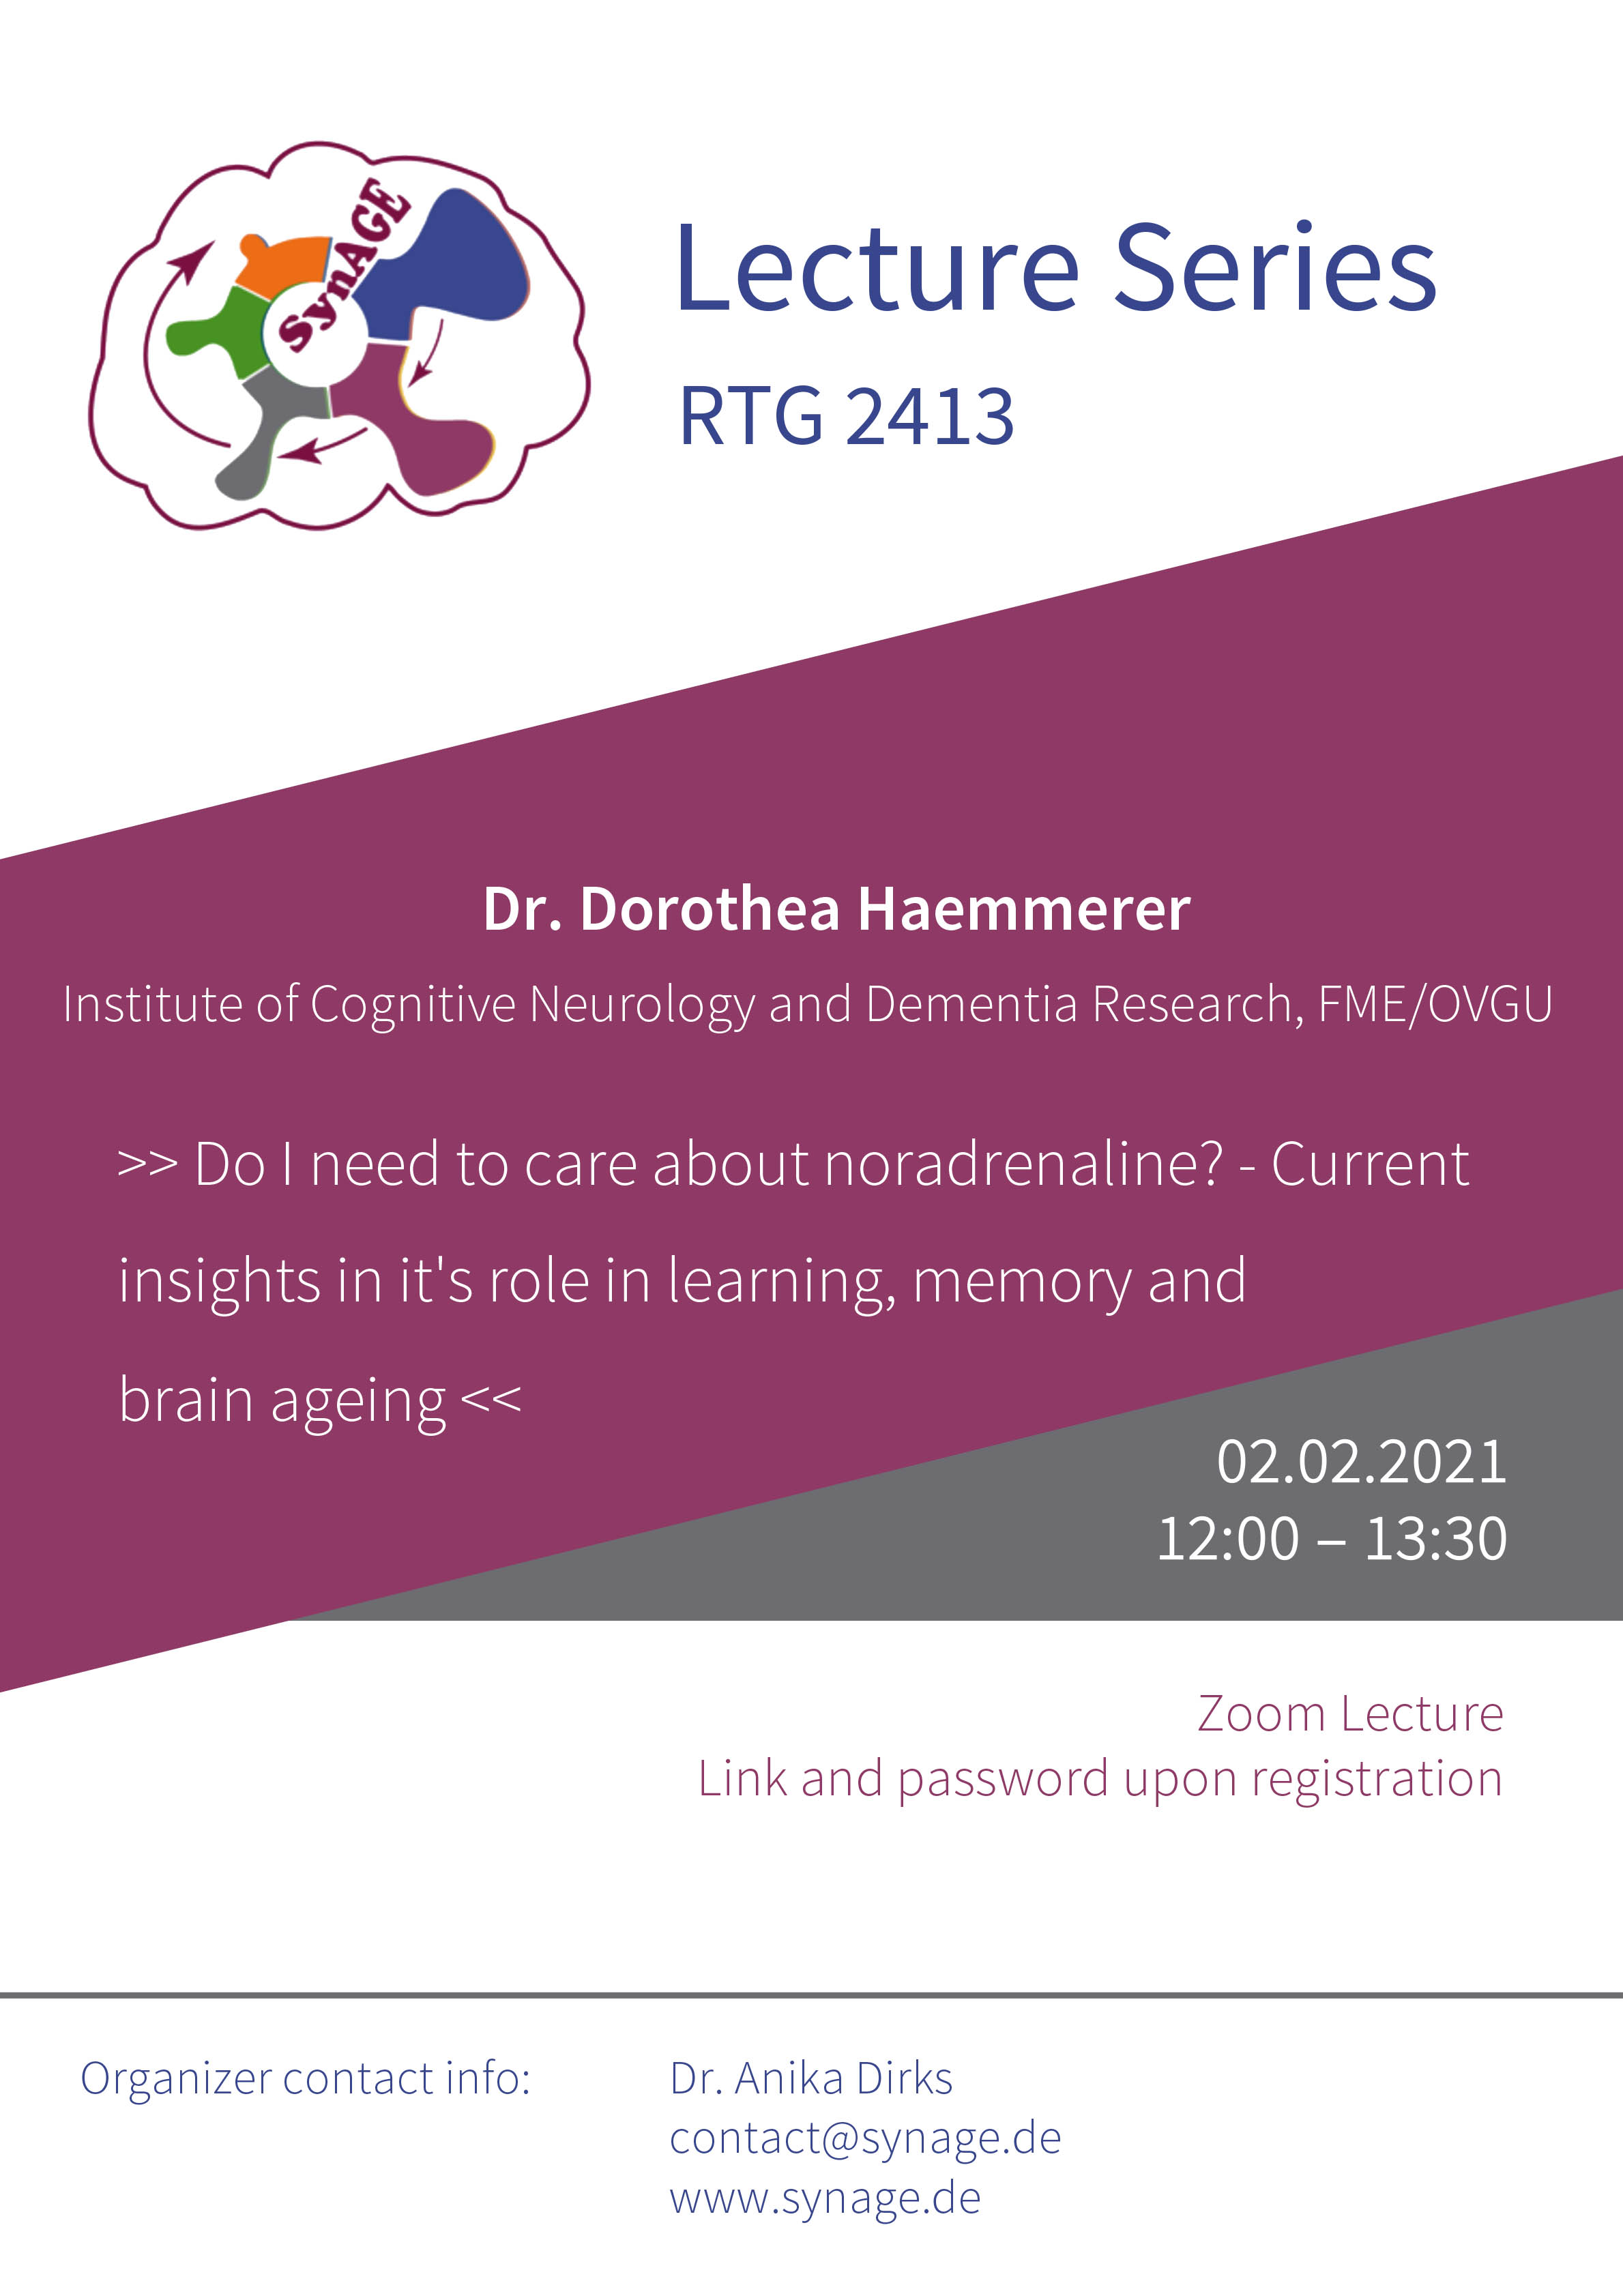 SynAGE Lecture: Do I need to care about noradrenaline? - Current insights in it's role in learning, memory and brain ageing @ Zoom